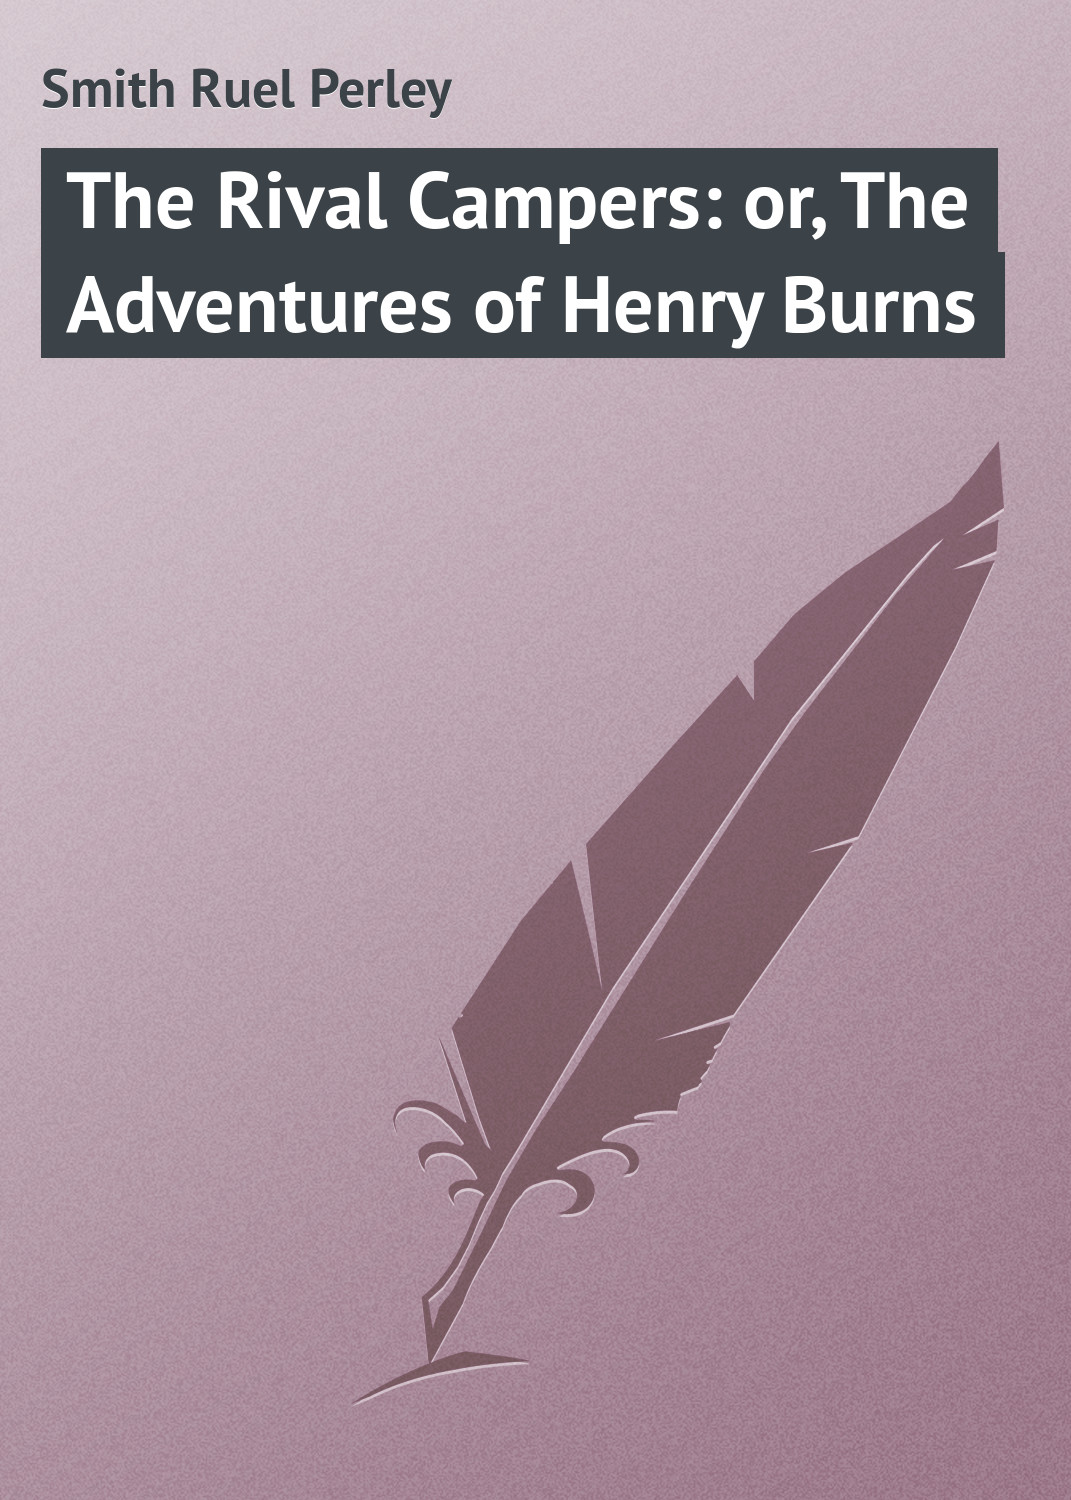 Smith Ruel Perley The Rival Campers: or, The Adventures of Henry Burns